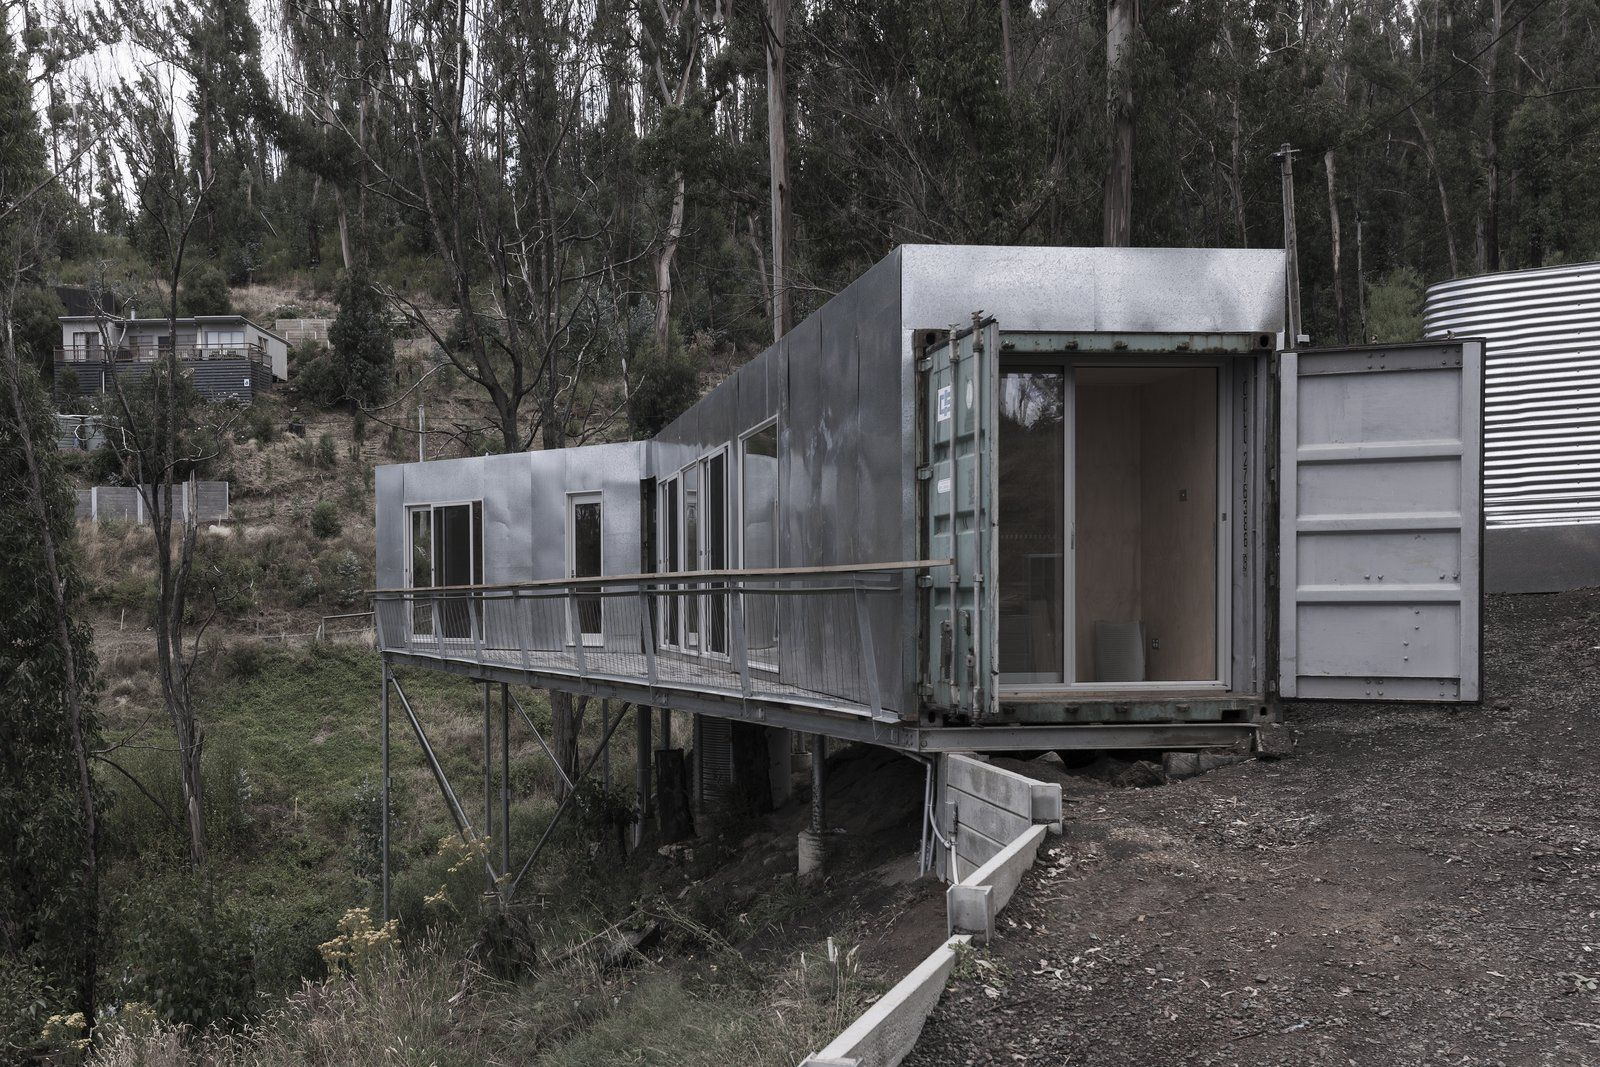 Best Kitchen Gallery: Photo 2 Of 8 In This Off Grid Container Home In Australia Disappears of Off The Grid Container Homes on rachelxblog.com